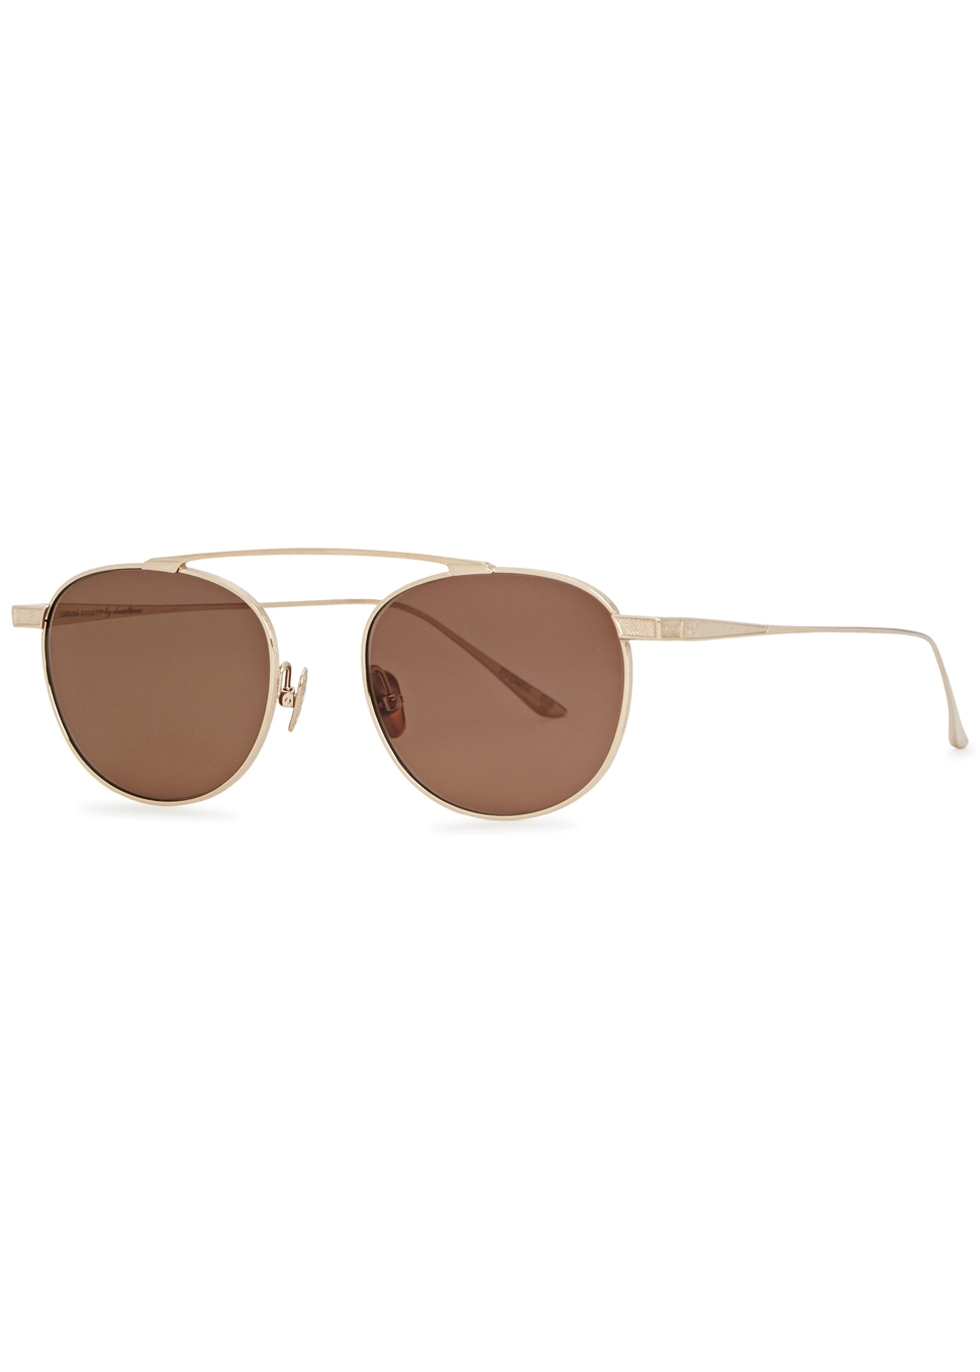 LEISURE SOCIETY ESCHER 18CT GOLD-PLATED SUNGLASSES